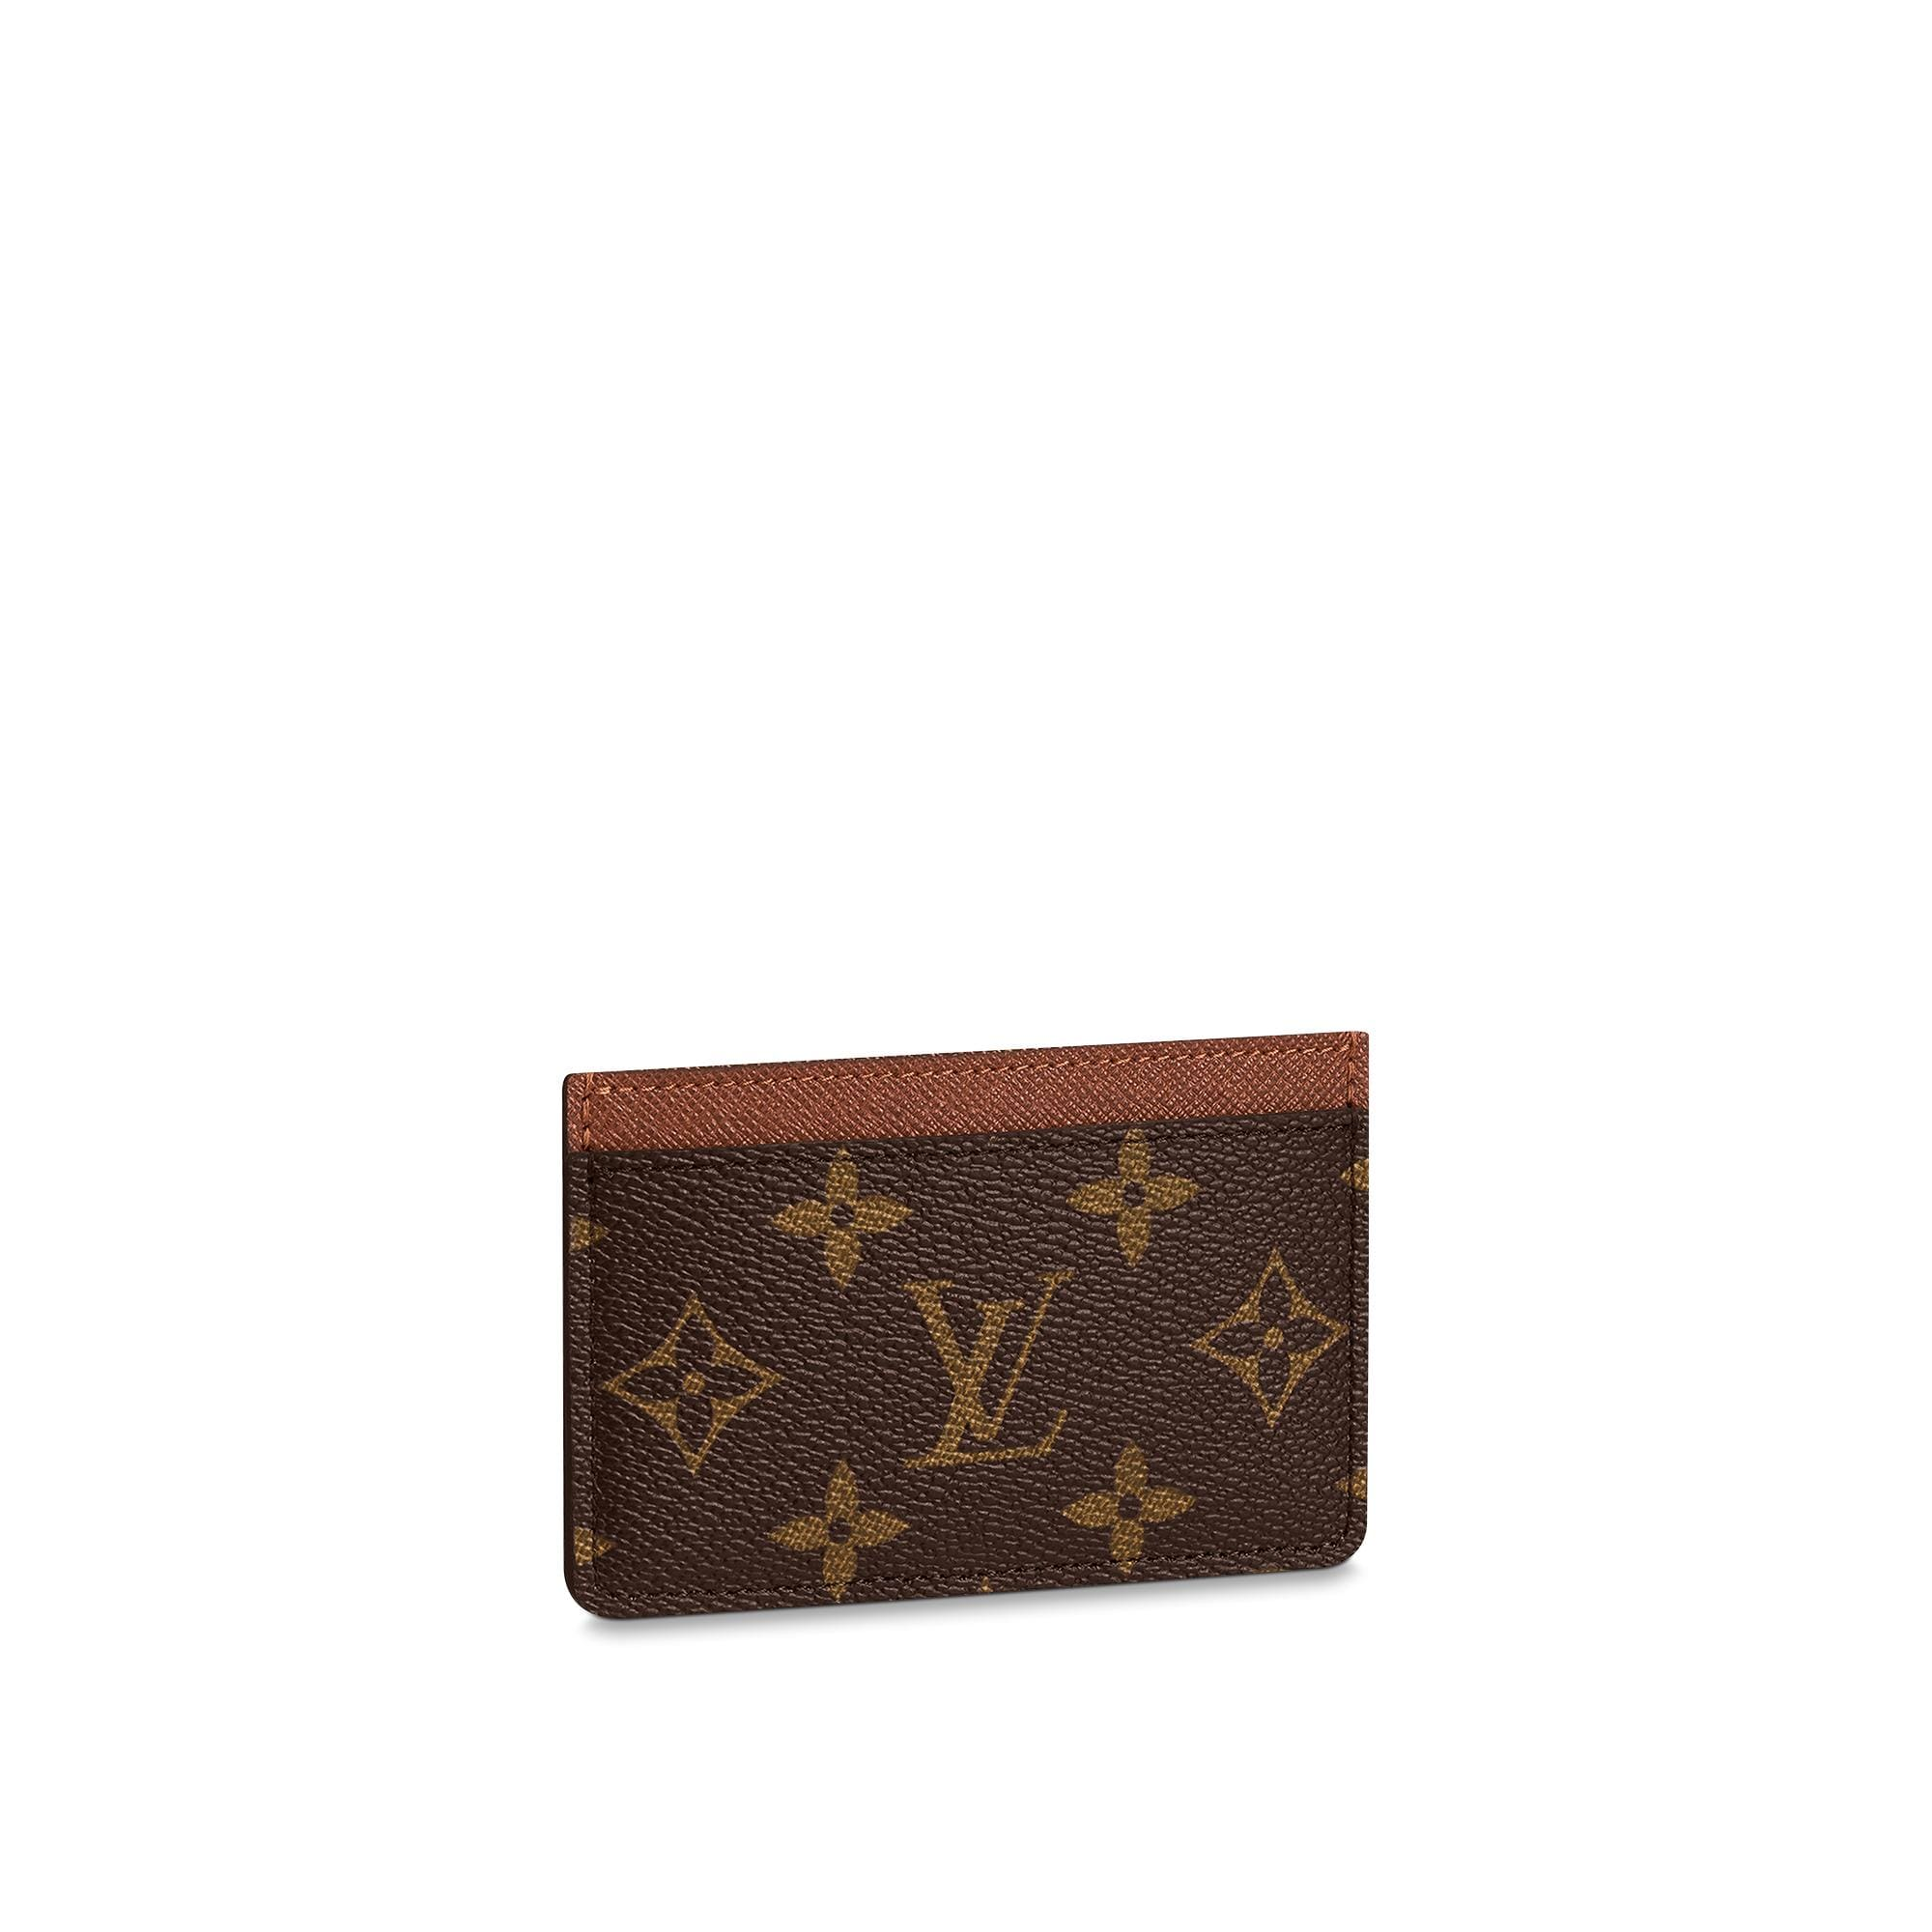 Card Holder Monogram Canvas  SMALL LEATHER GOODS  LOUIS VUITTON